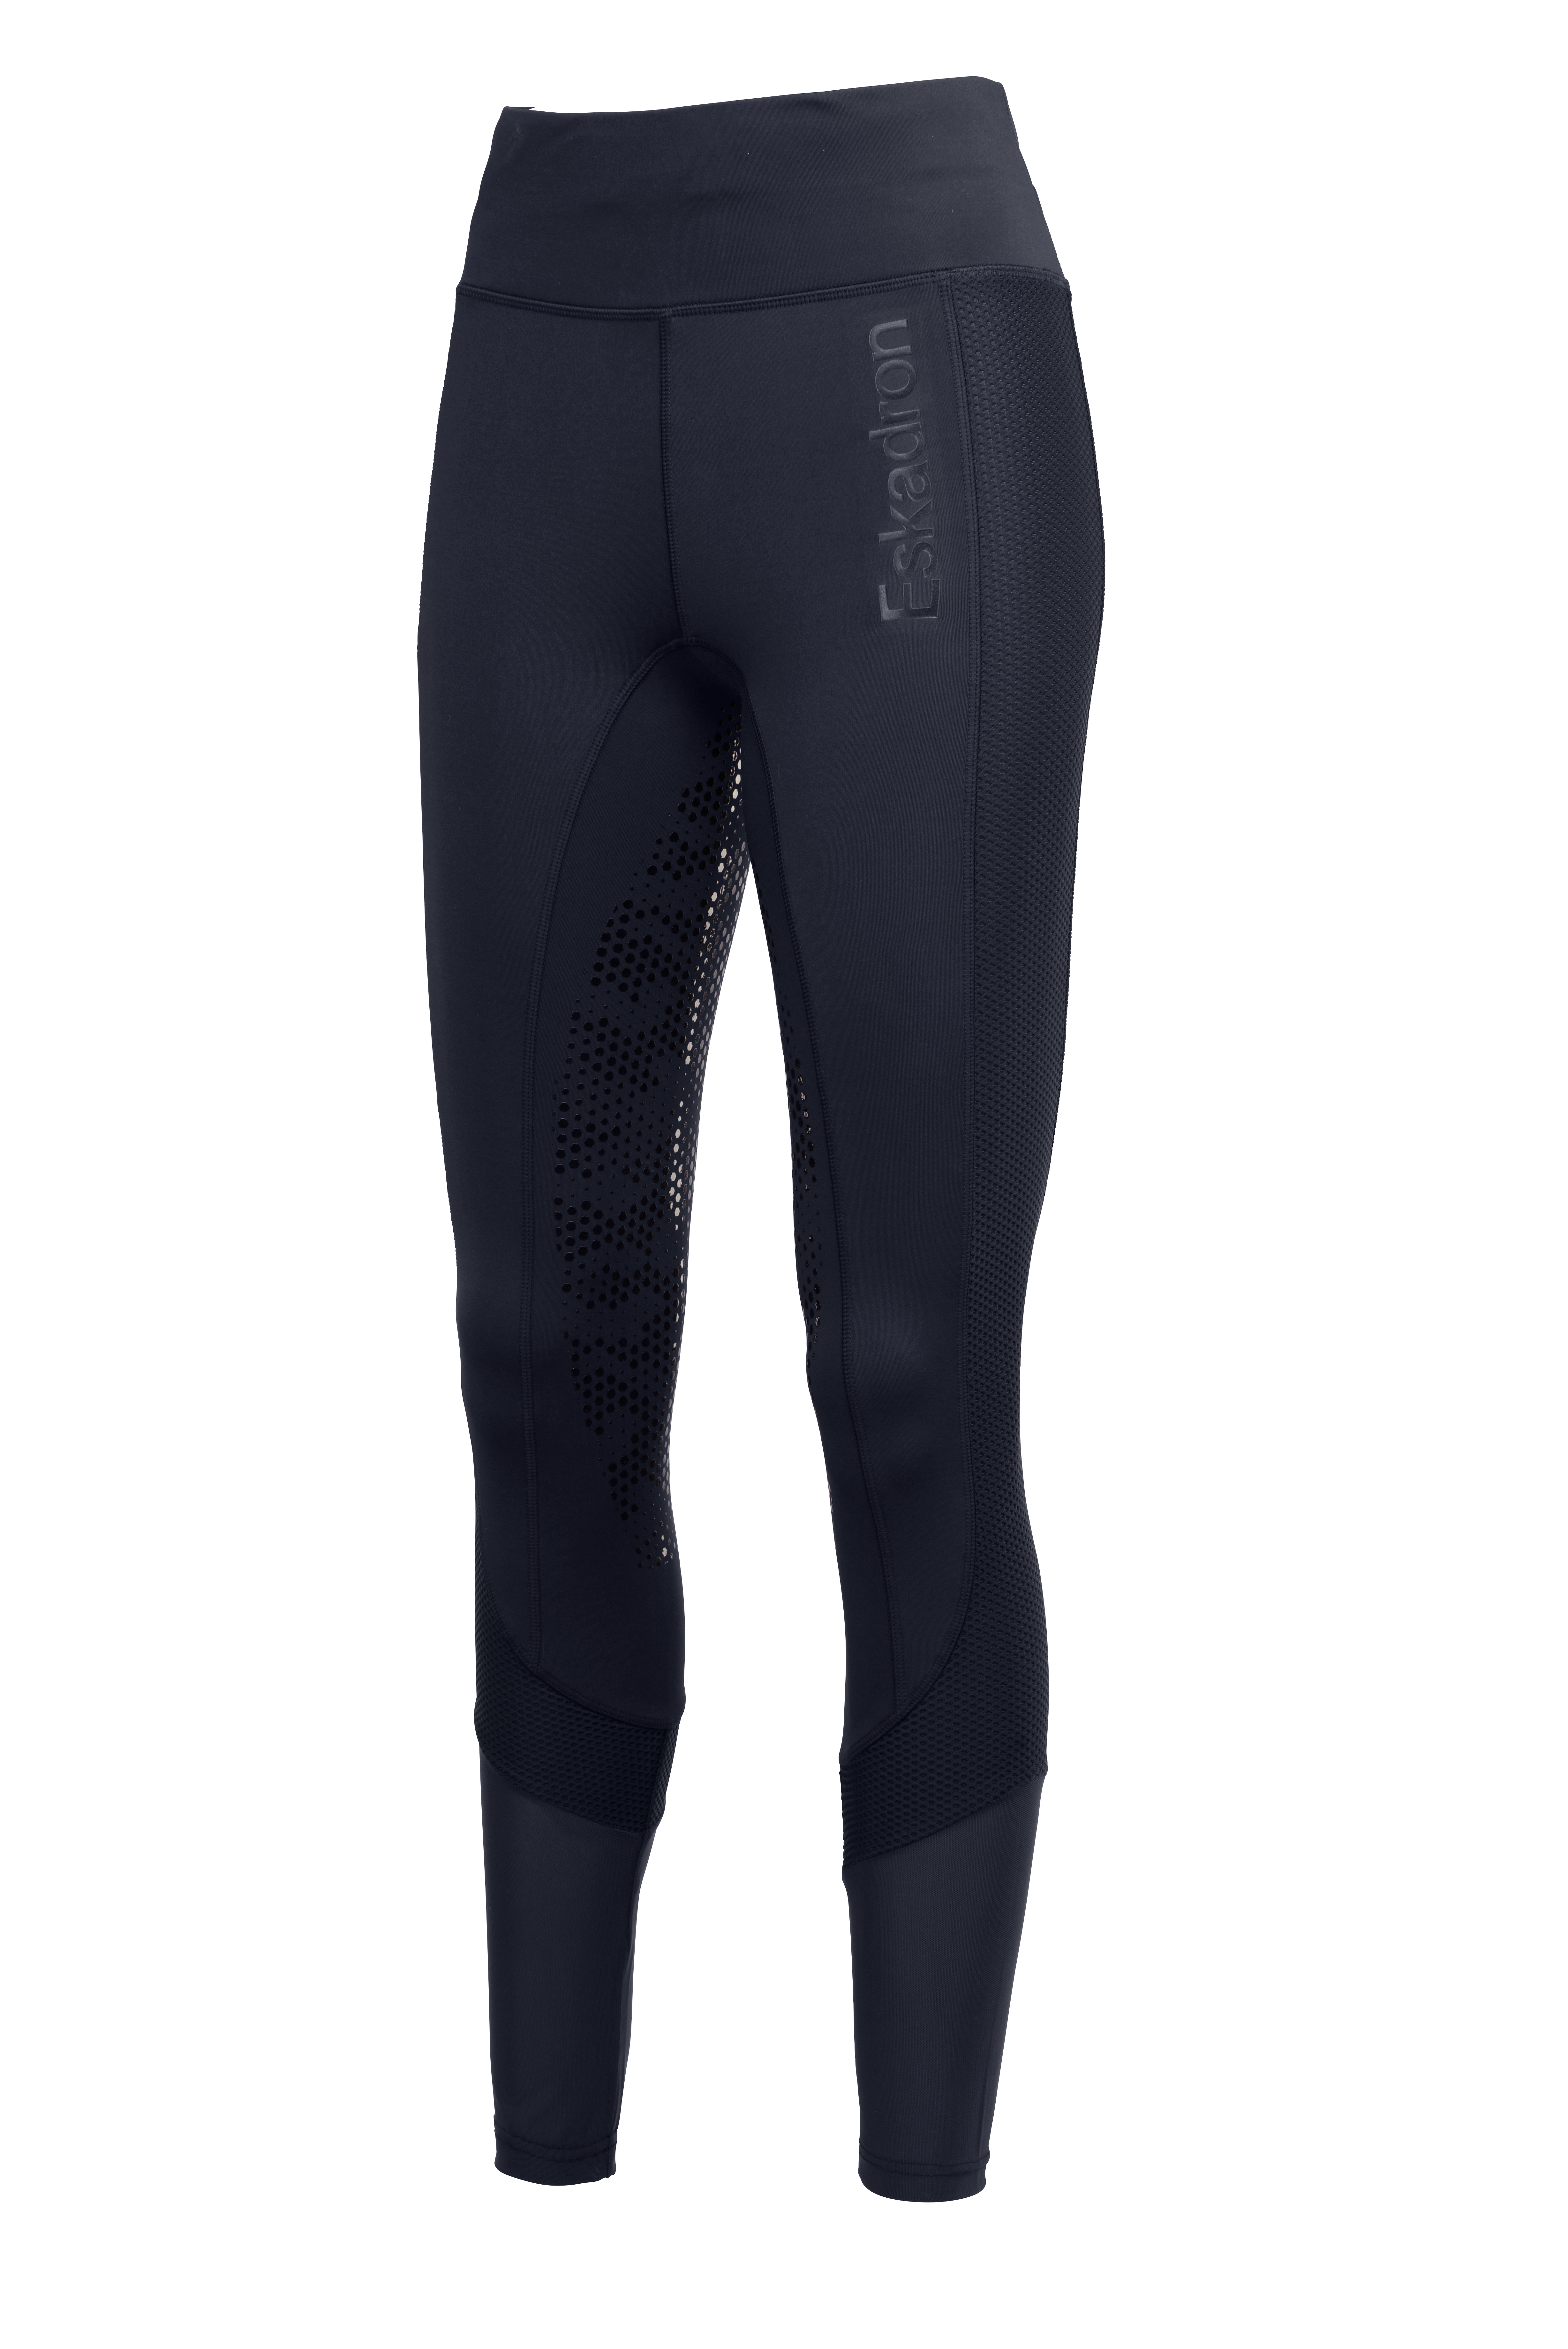 Eskadron Women Riding Tights  REFLEXX